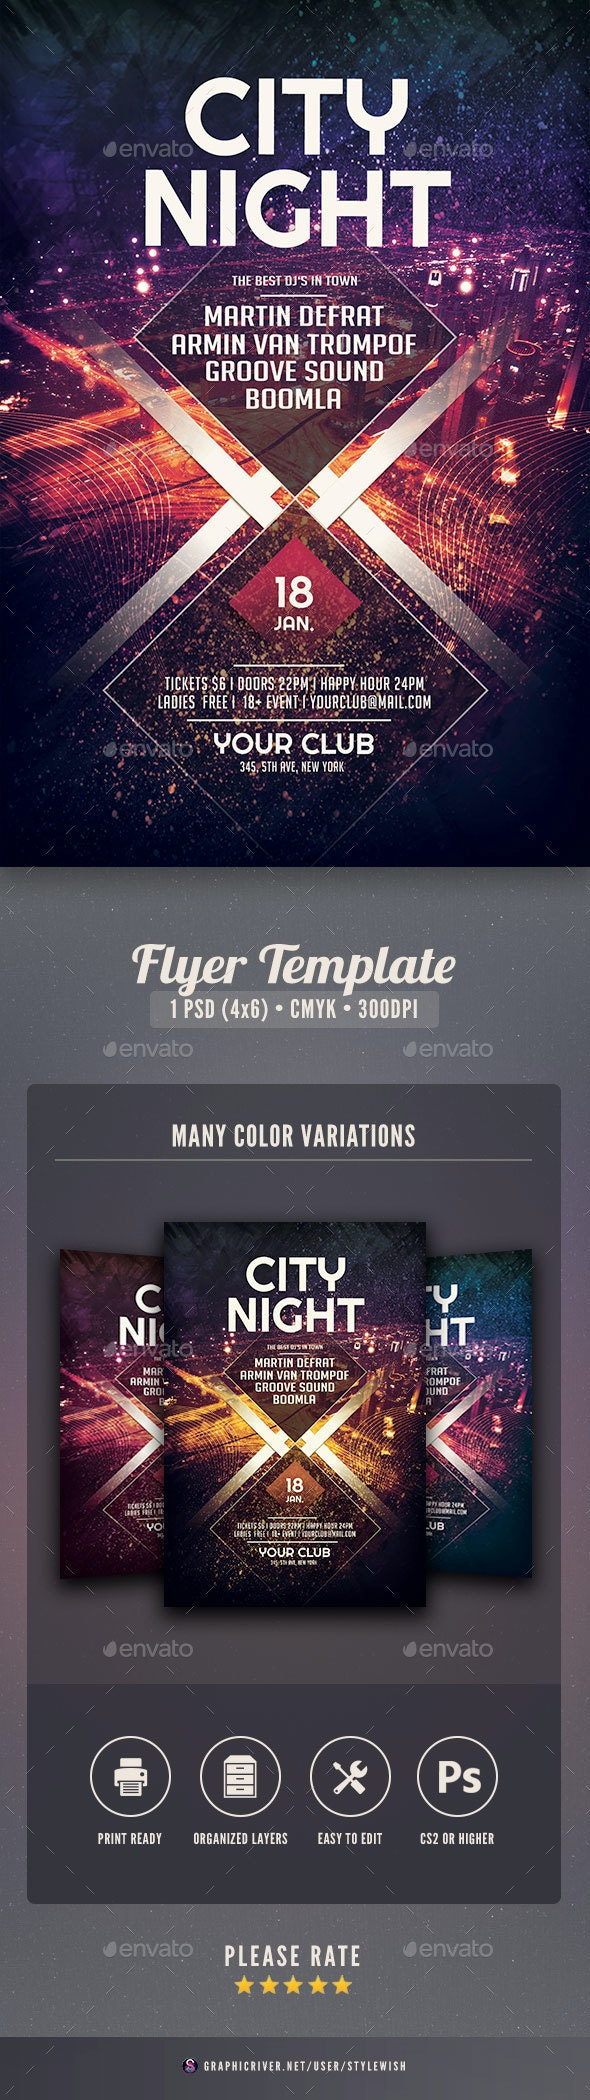 City Night Flyer - Clubs & Parties Events